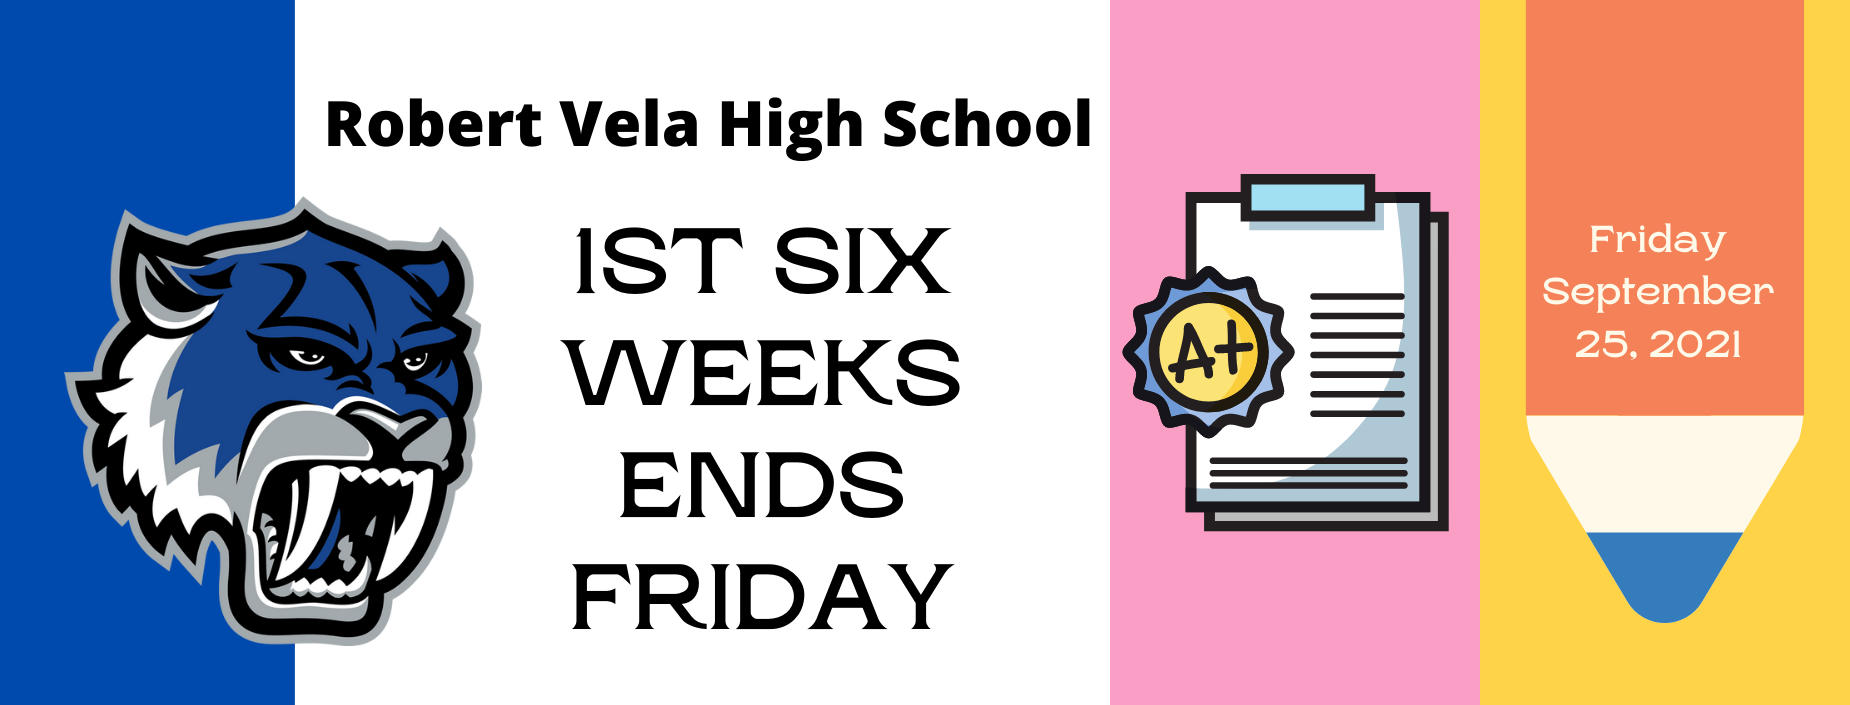 Grading Period Ends Friday